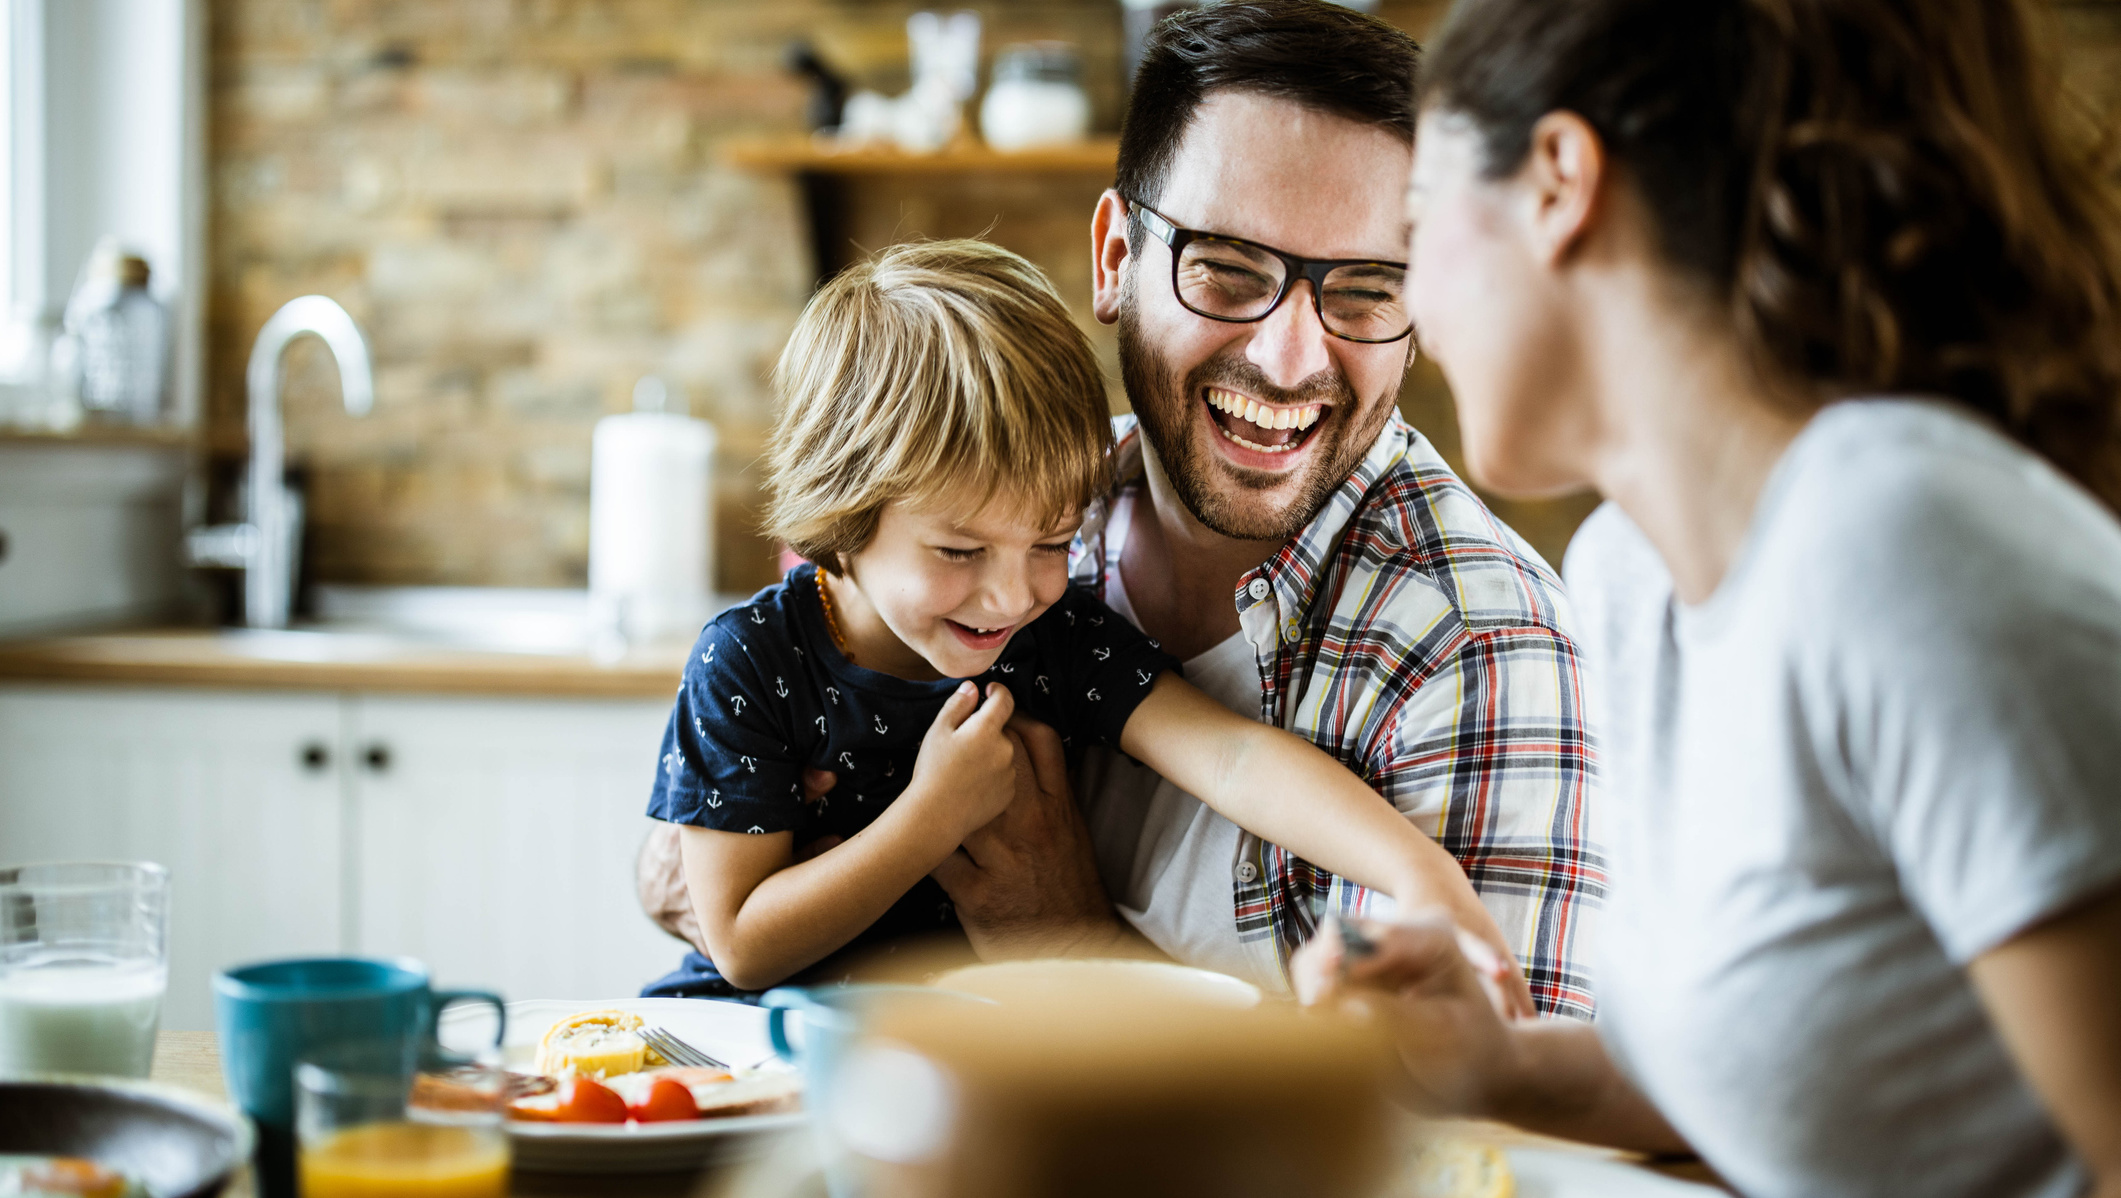 6 Ways to Make Family Dinner Fun and Meaningful